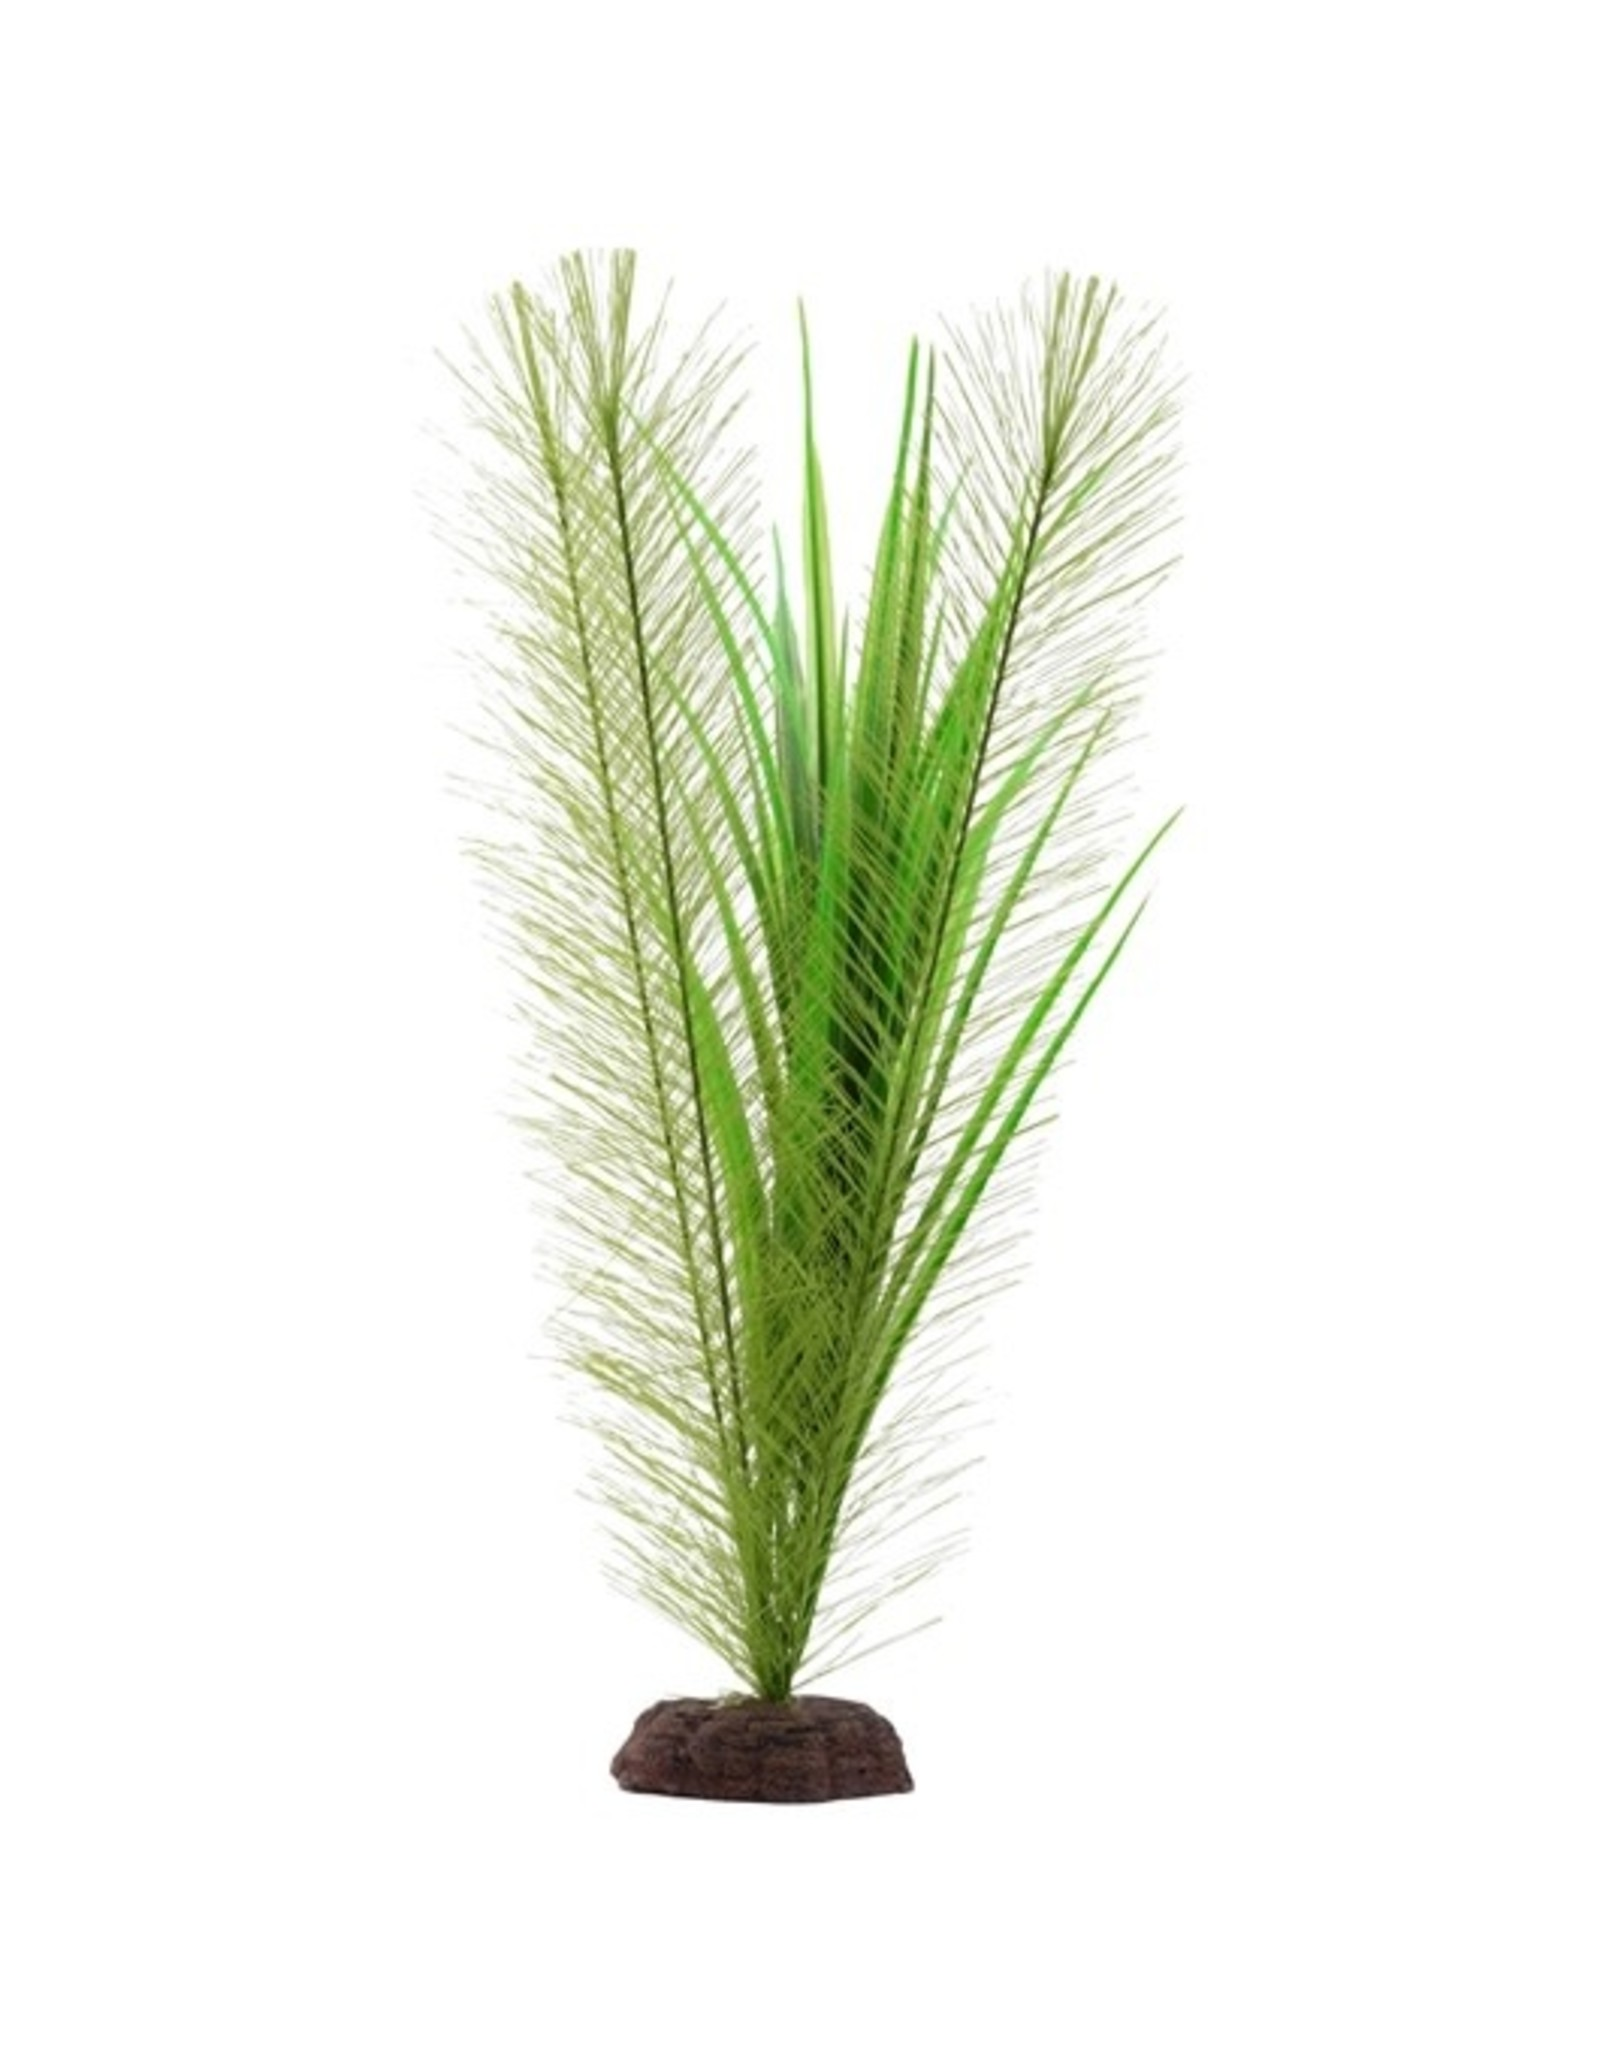 """Fluval Fluval Green Parrot's Feather/Valisneria Plant, 16"""""""